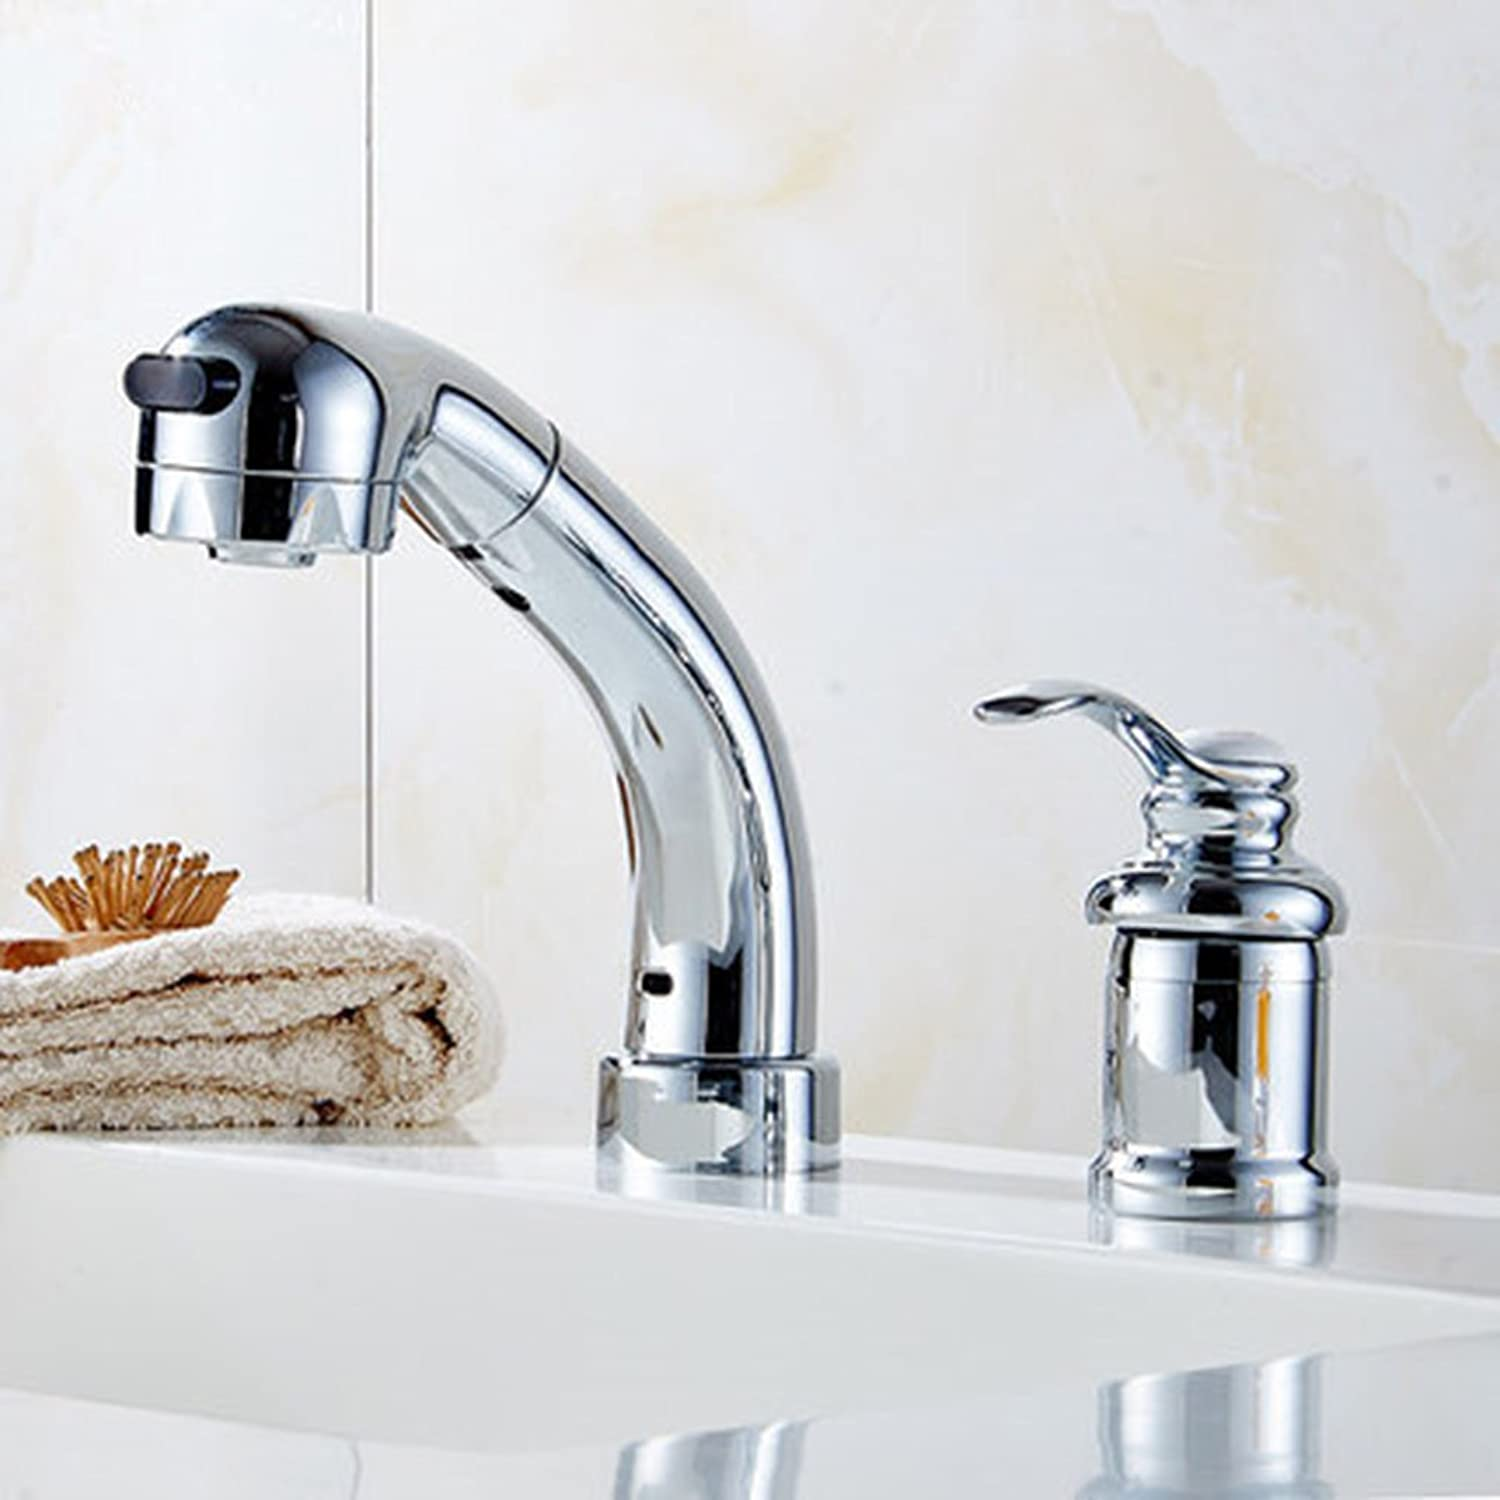 QJIAXING Split Type Double Hole Copper Pull Out Basin Faucet Telescopic Shower Head Mixing Bathroom Tap,A